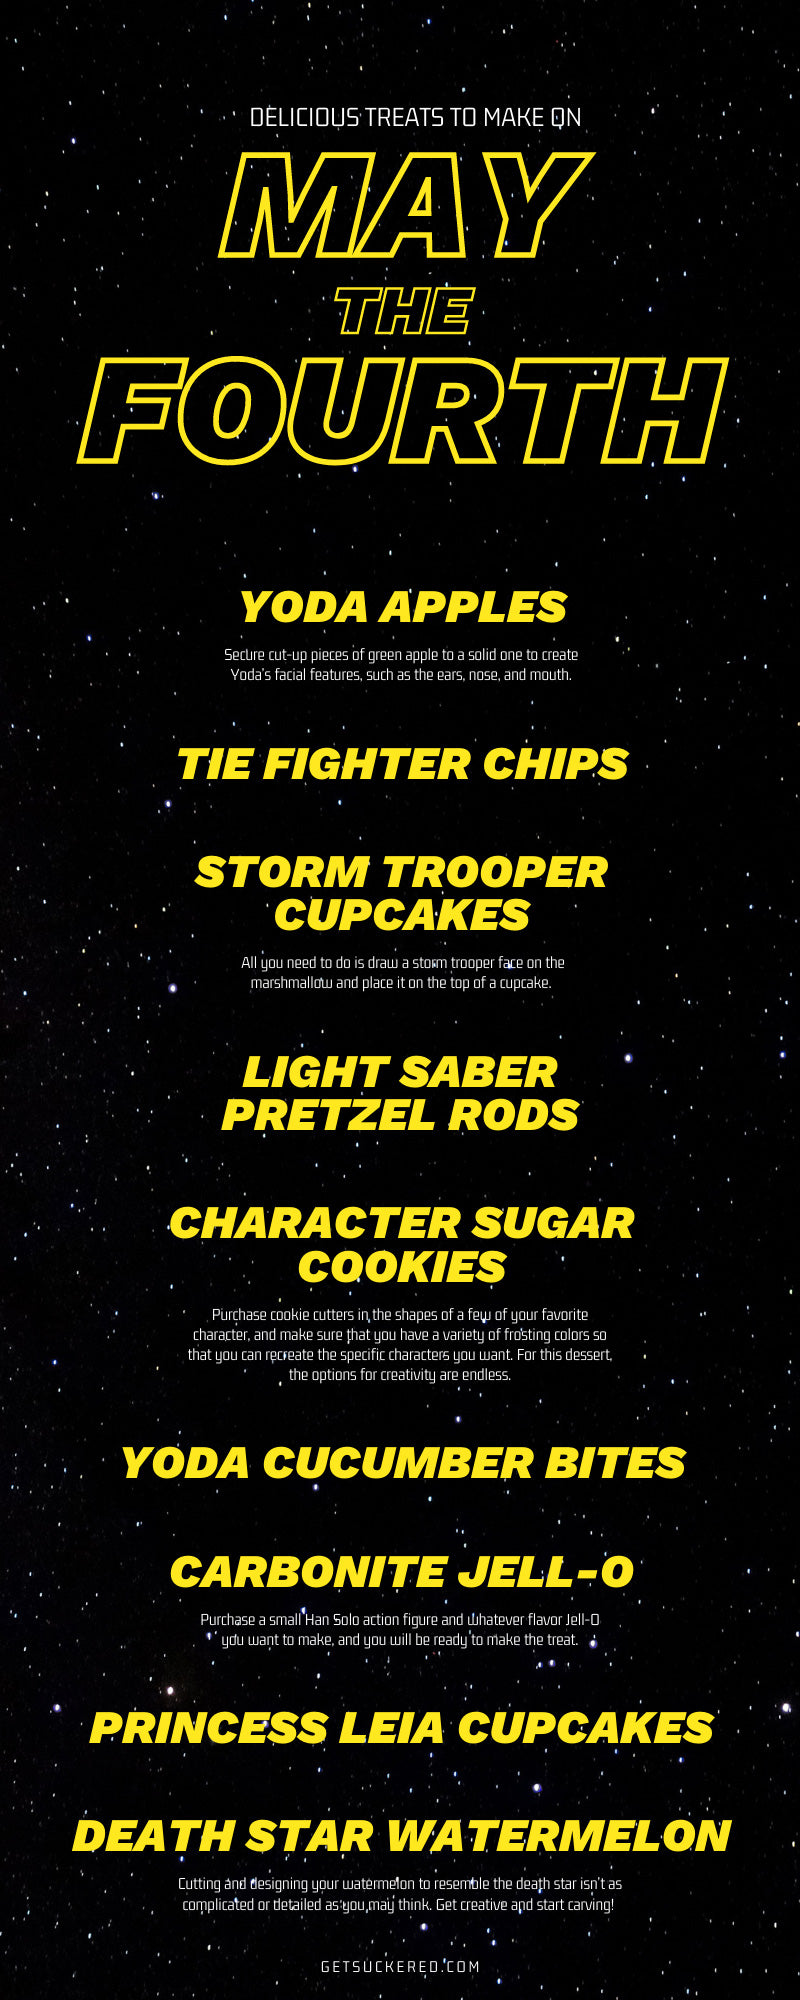 Delicious Treats To Make on May the Fourth